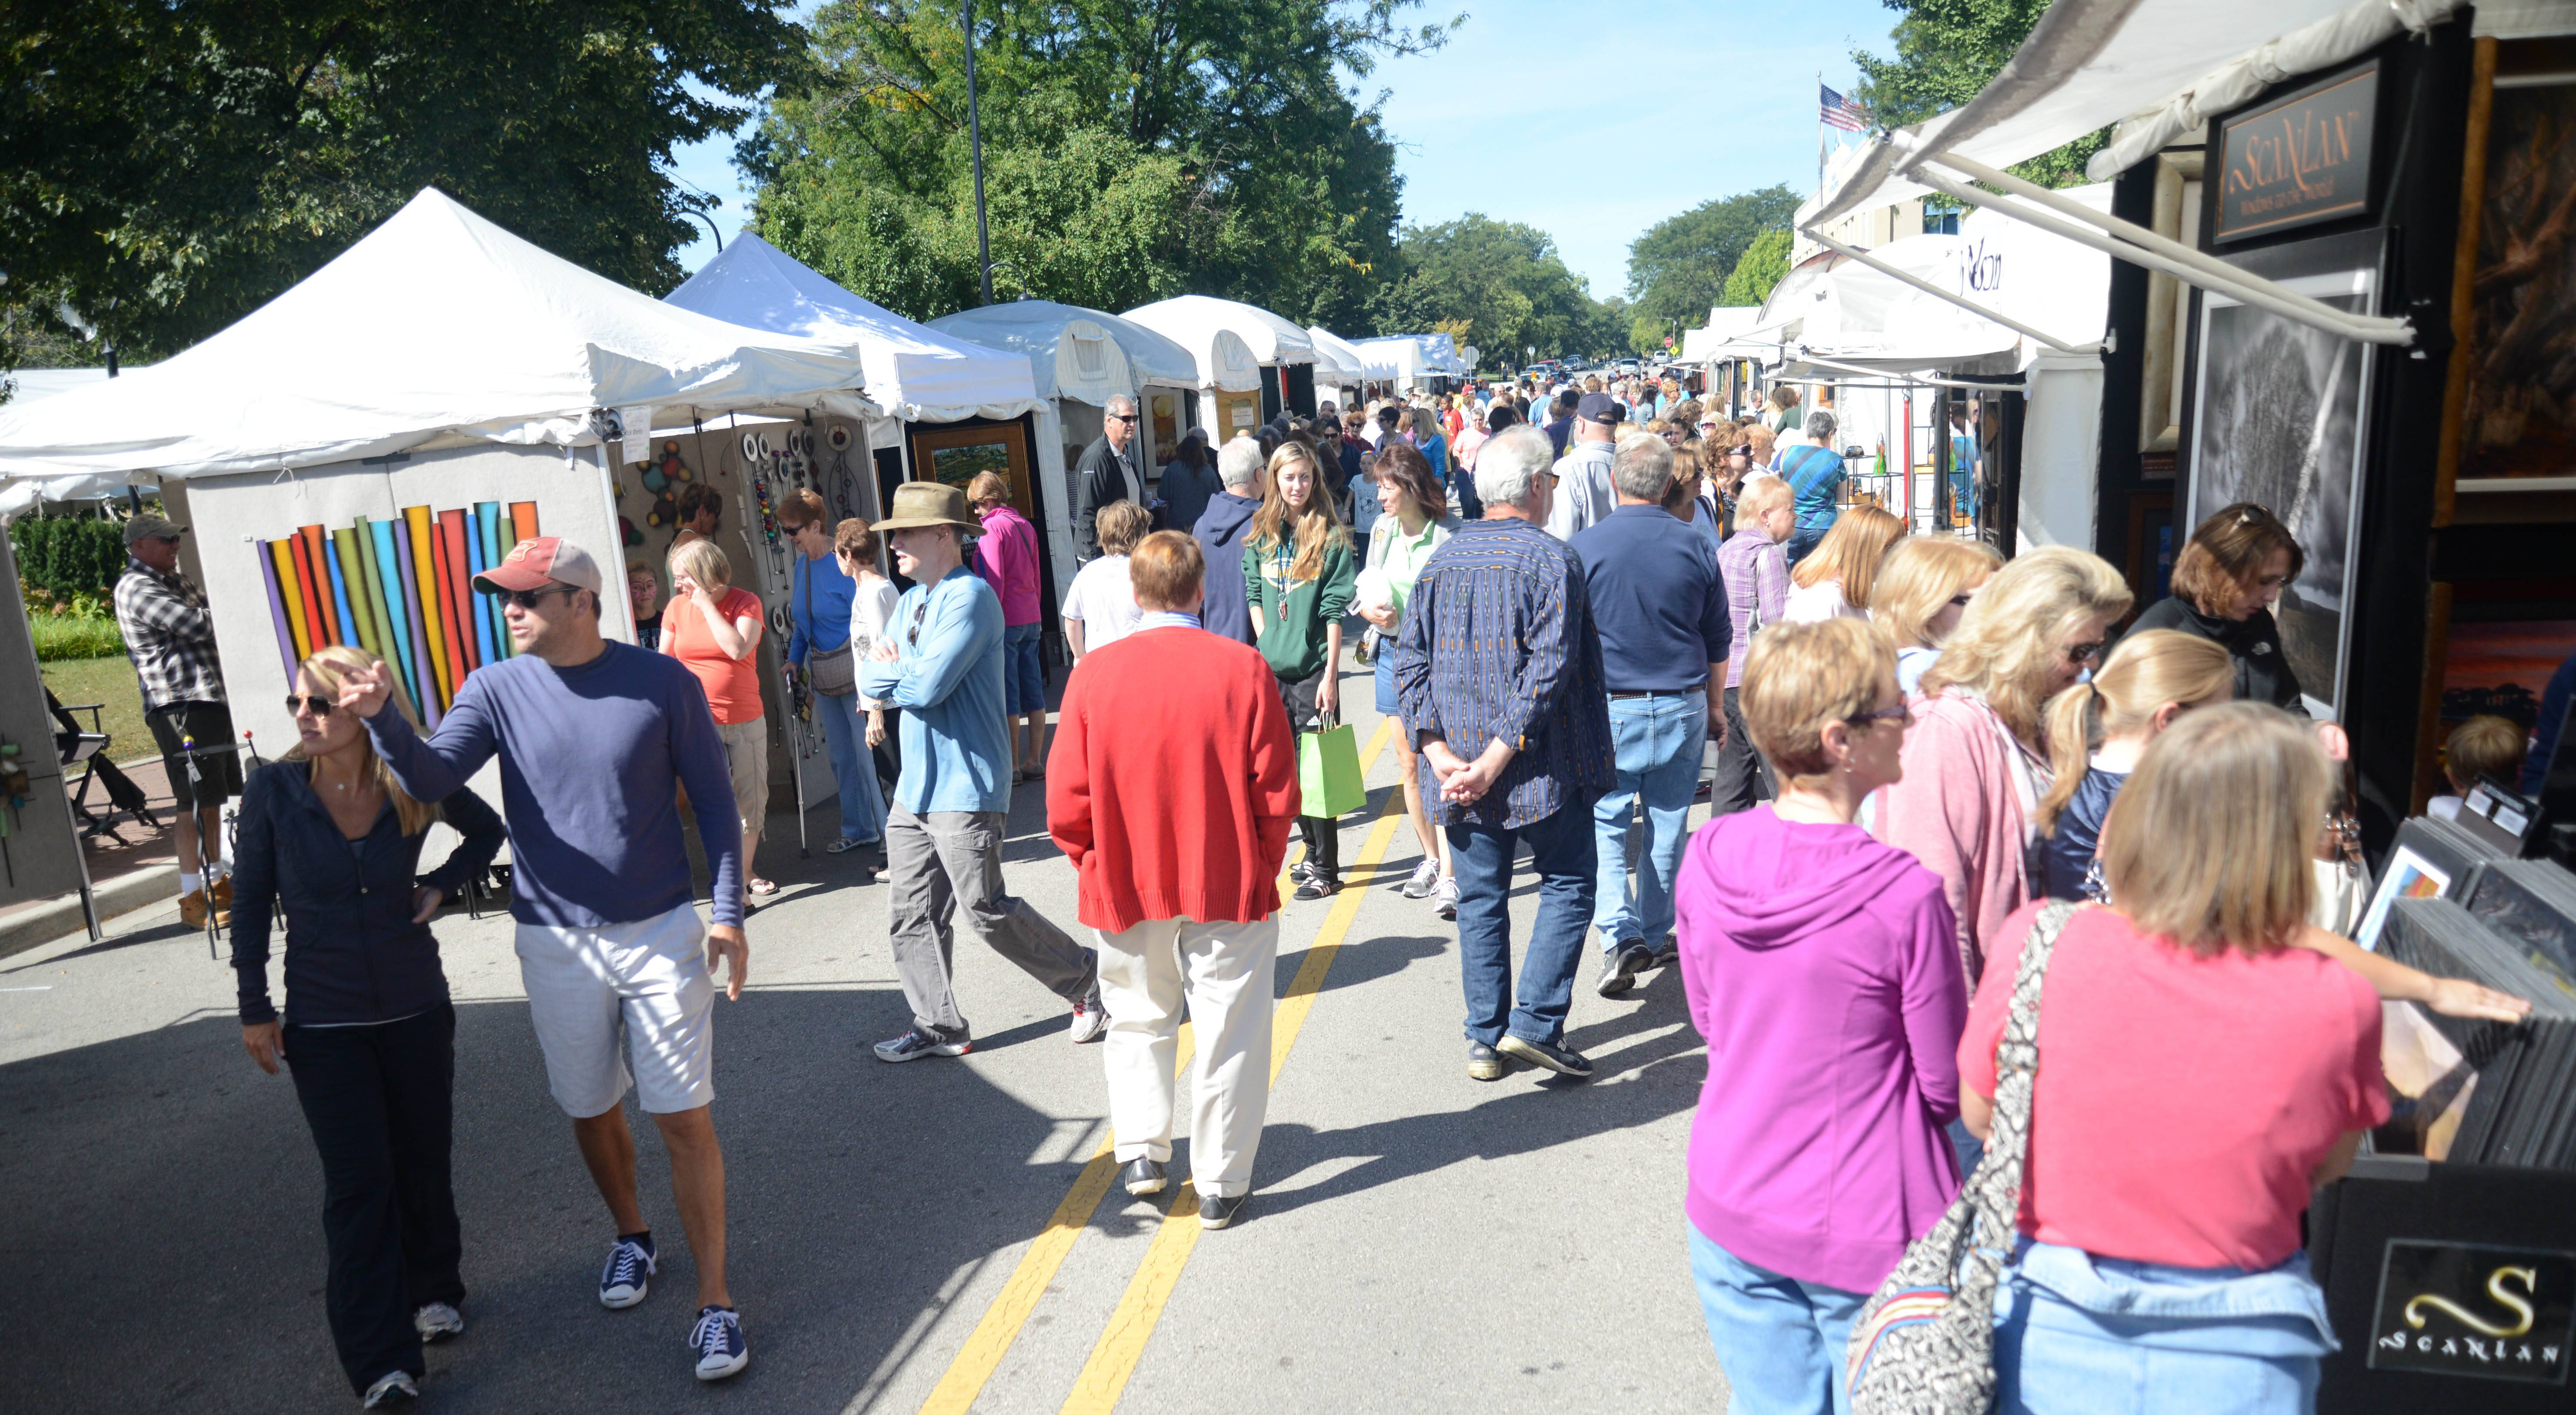 The Riverwalk Fine Art Fair will be back along Jackson Avenue, Main Street and the Riverwalk in downtown Naperville on Saturday and Sunday, Sept. 16 and 17, for its 32nd year, featuring booths from 135 artists.